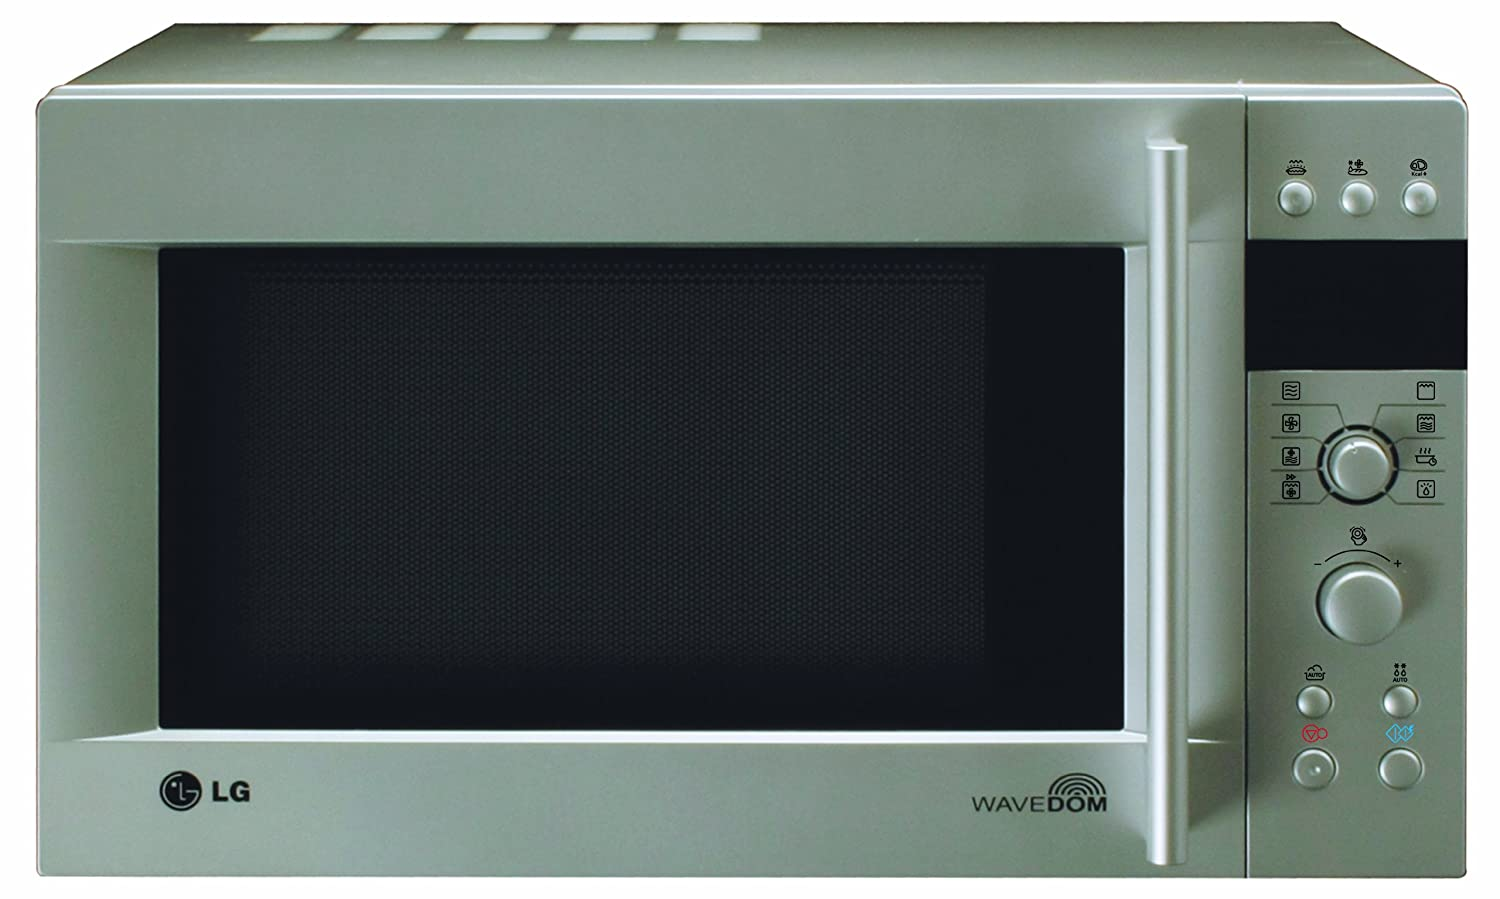 LG - Microondas Mc8284Ns, 32L, Conveccion, Pantalla Led ...